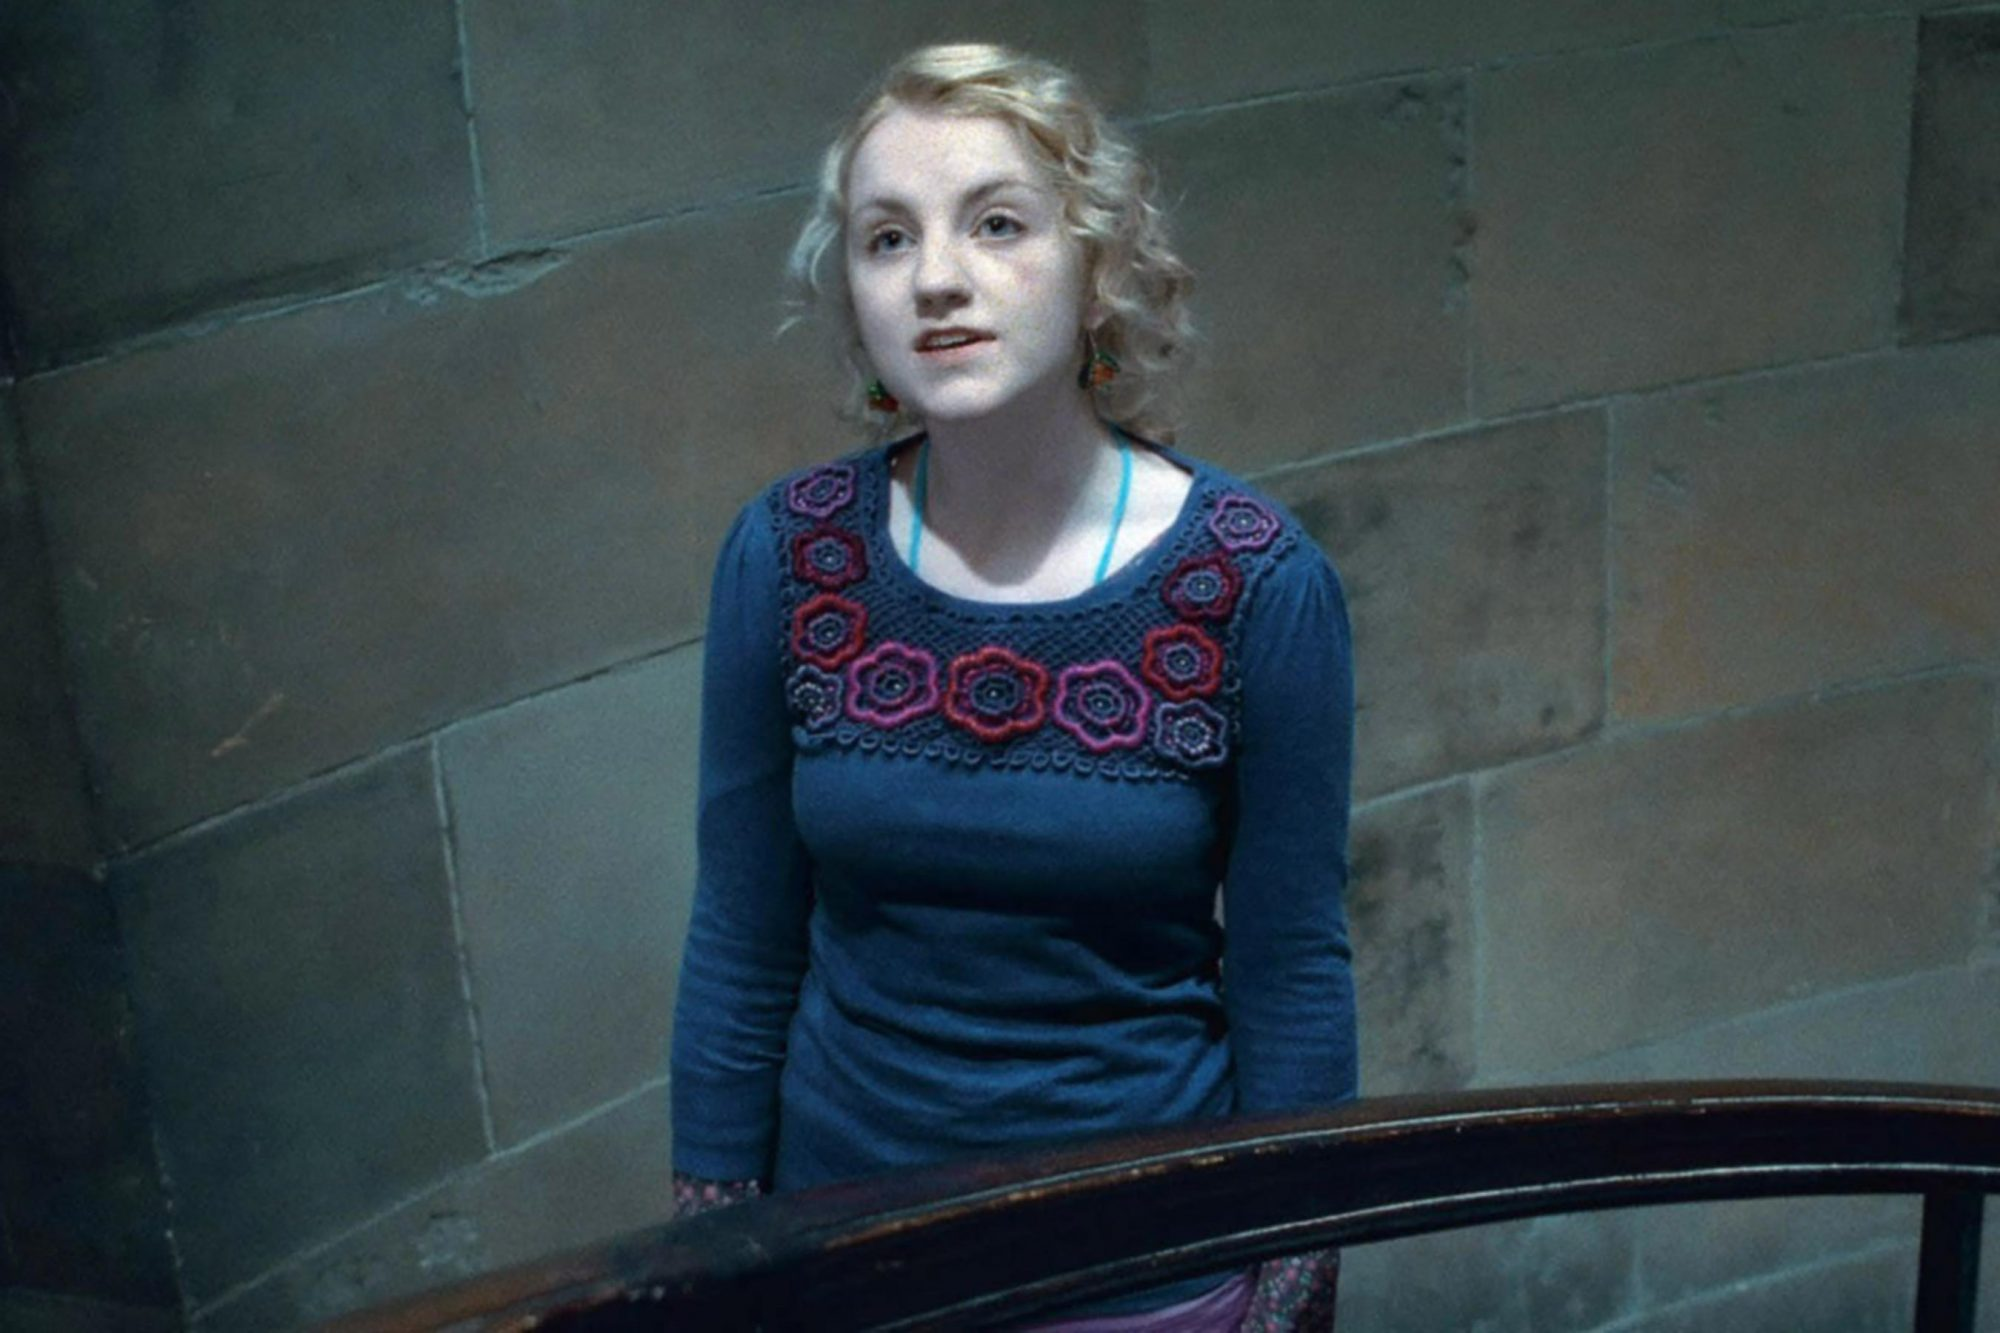 HARRY POTTER AND THE DEATHLY HALLOWS: PART 2, Evanna Lynch, 2011. ©2011 Warner Bros. Ent. Harry Pott